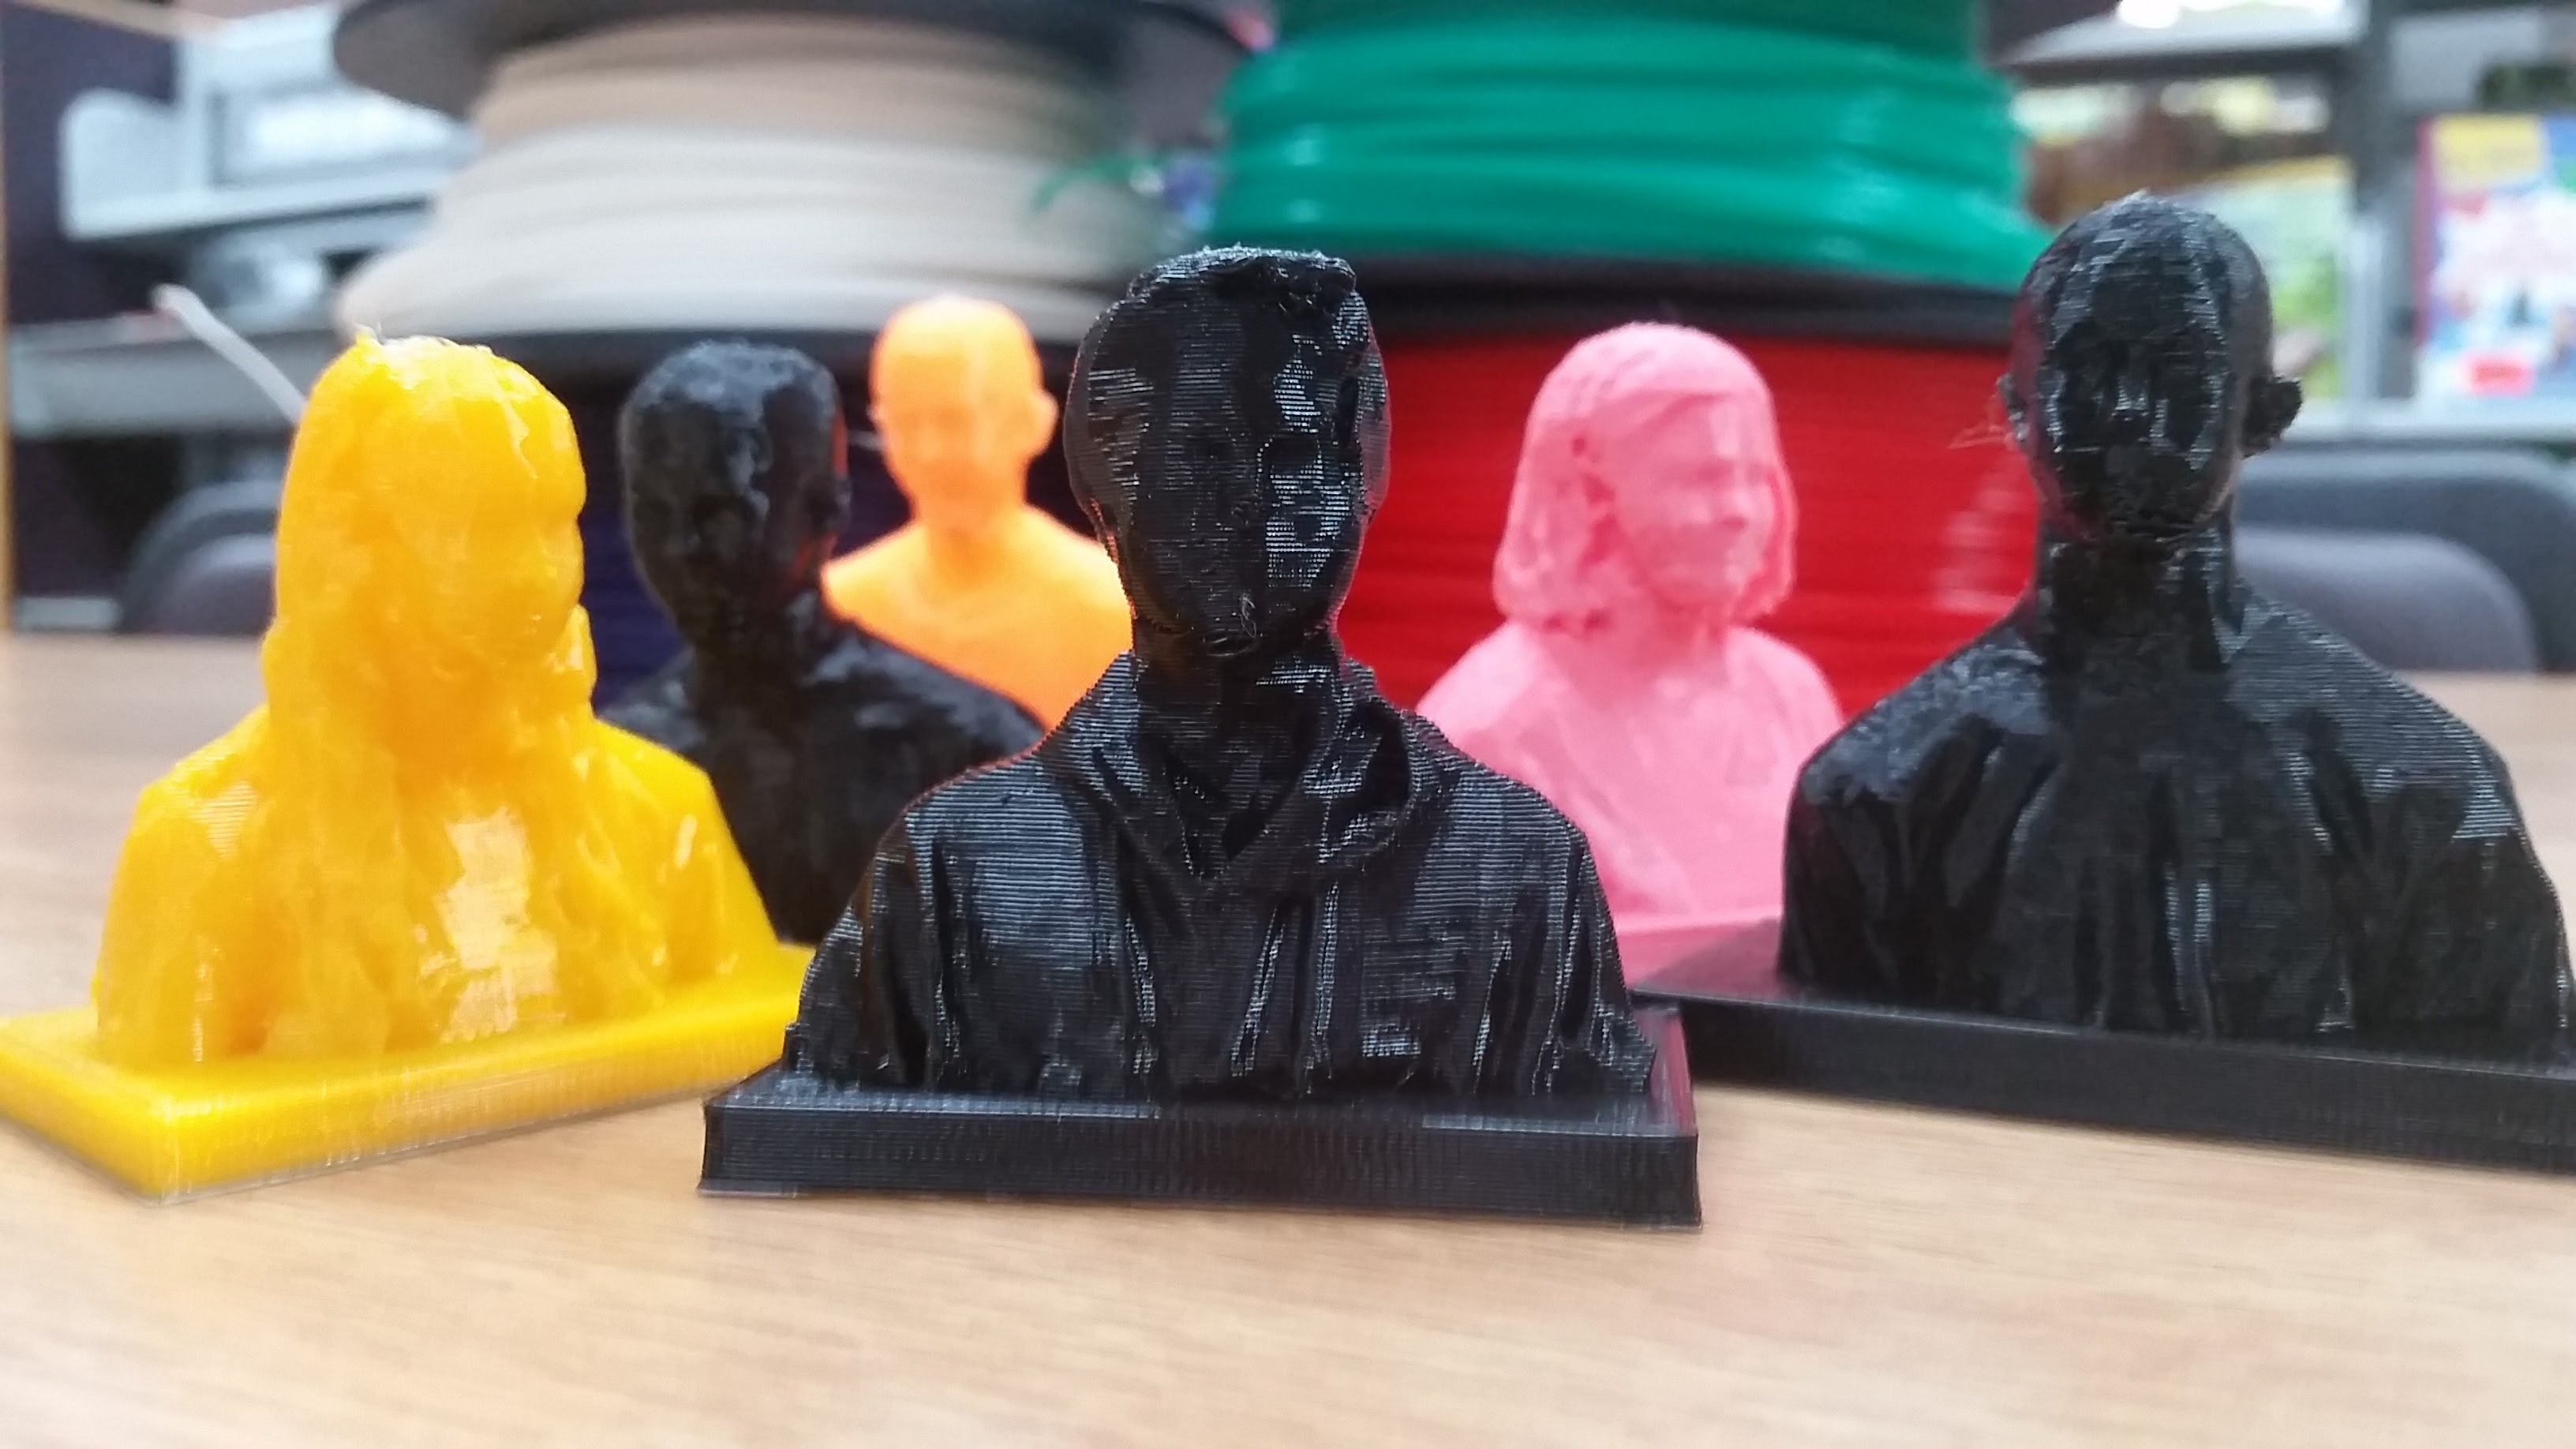 3D prints of scanned busts